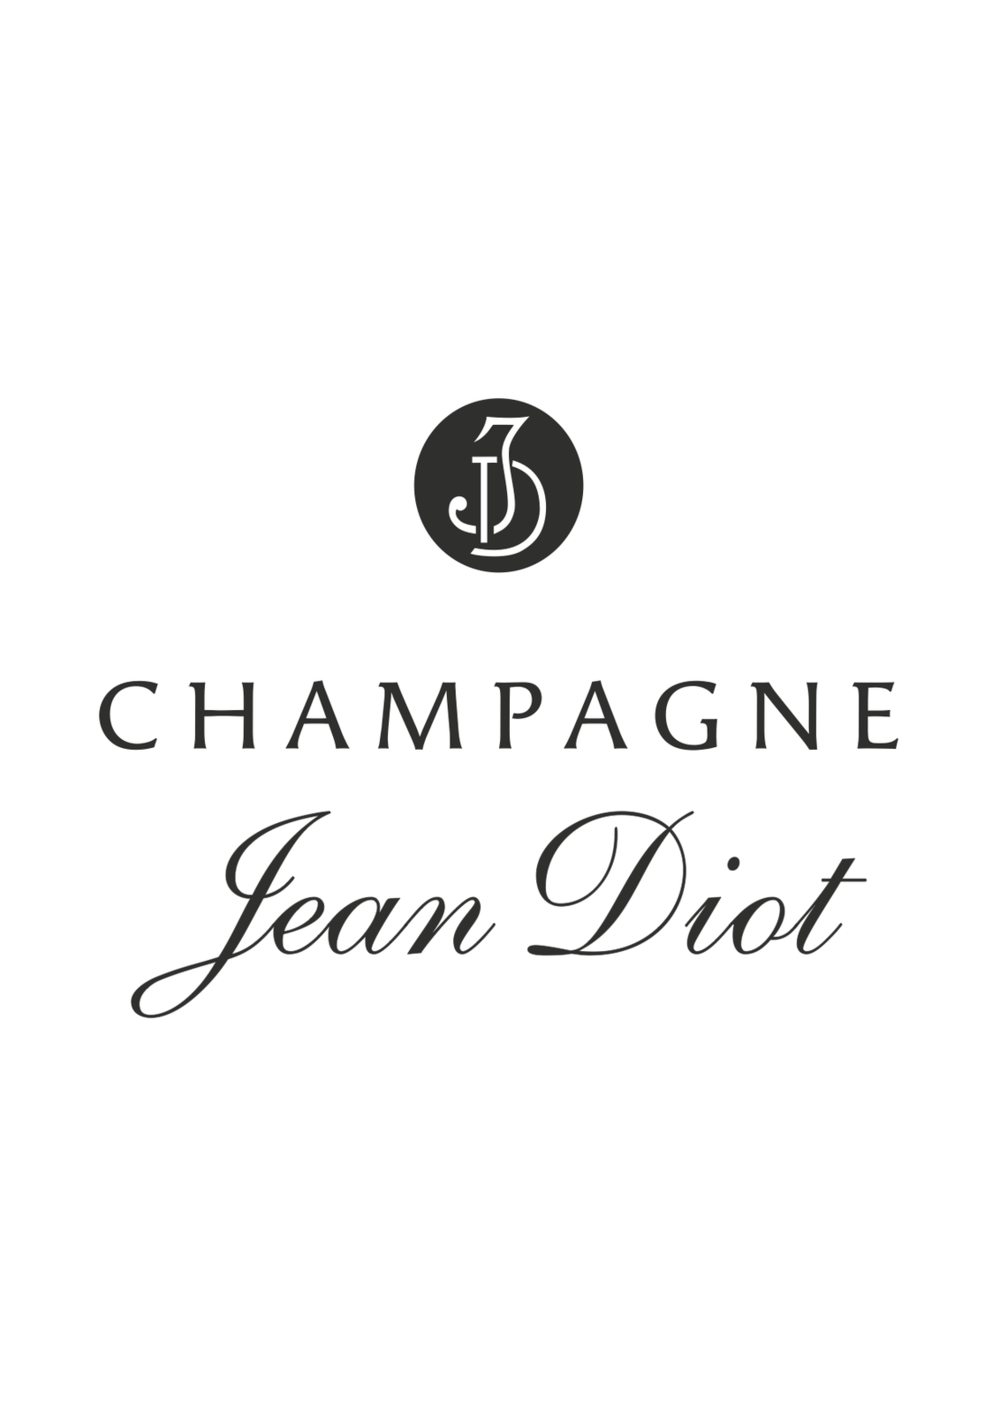 Champagne Jean Diot.png